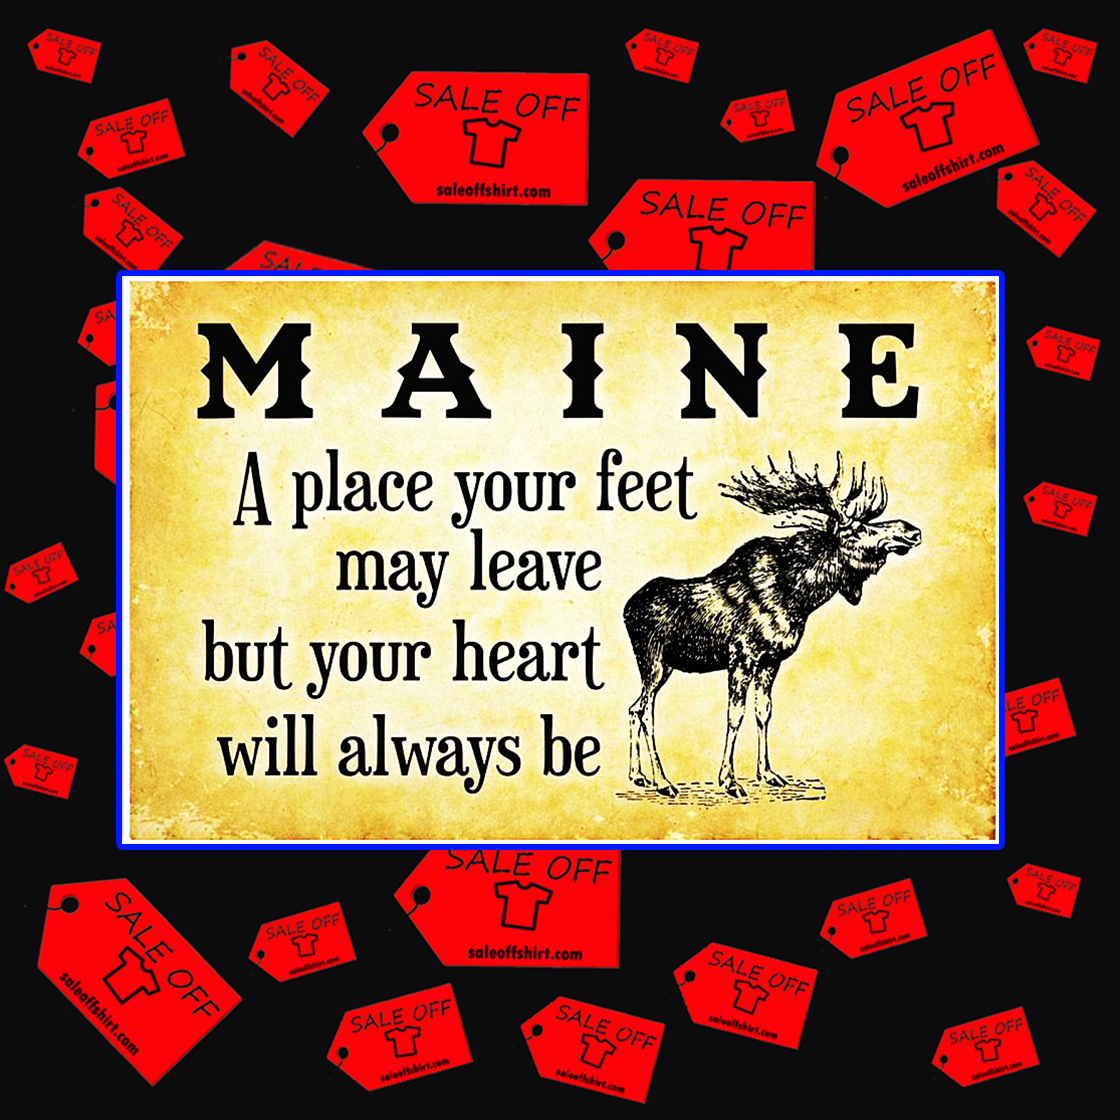 Maine a place your feet may leave but your heart will always be poster 17x11